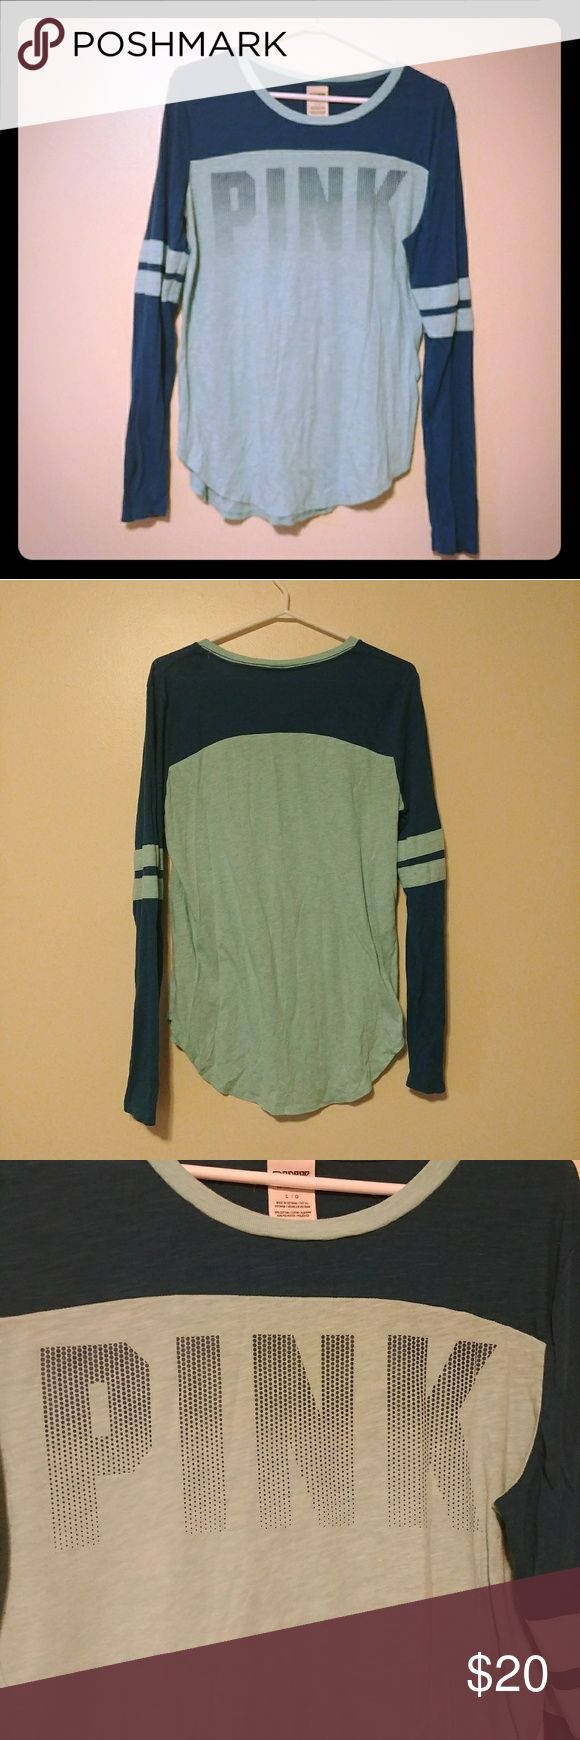 Victoria secret pink long sleeve teal shirt Victoria secret pink long sleeve blue and teal shirt. A few linty area unde lr the arms, as pictured. Other than that good conditon. Size large. PINK Tops Tees - Long Sleeve